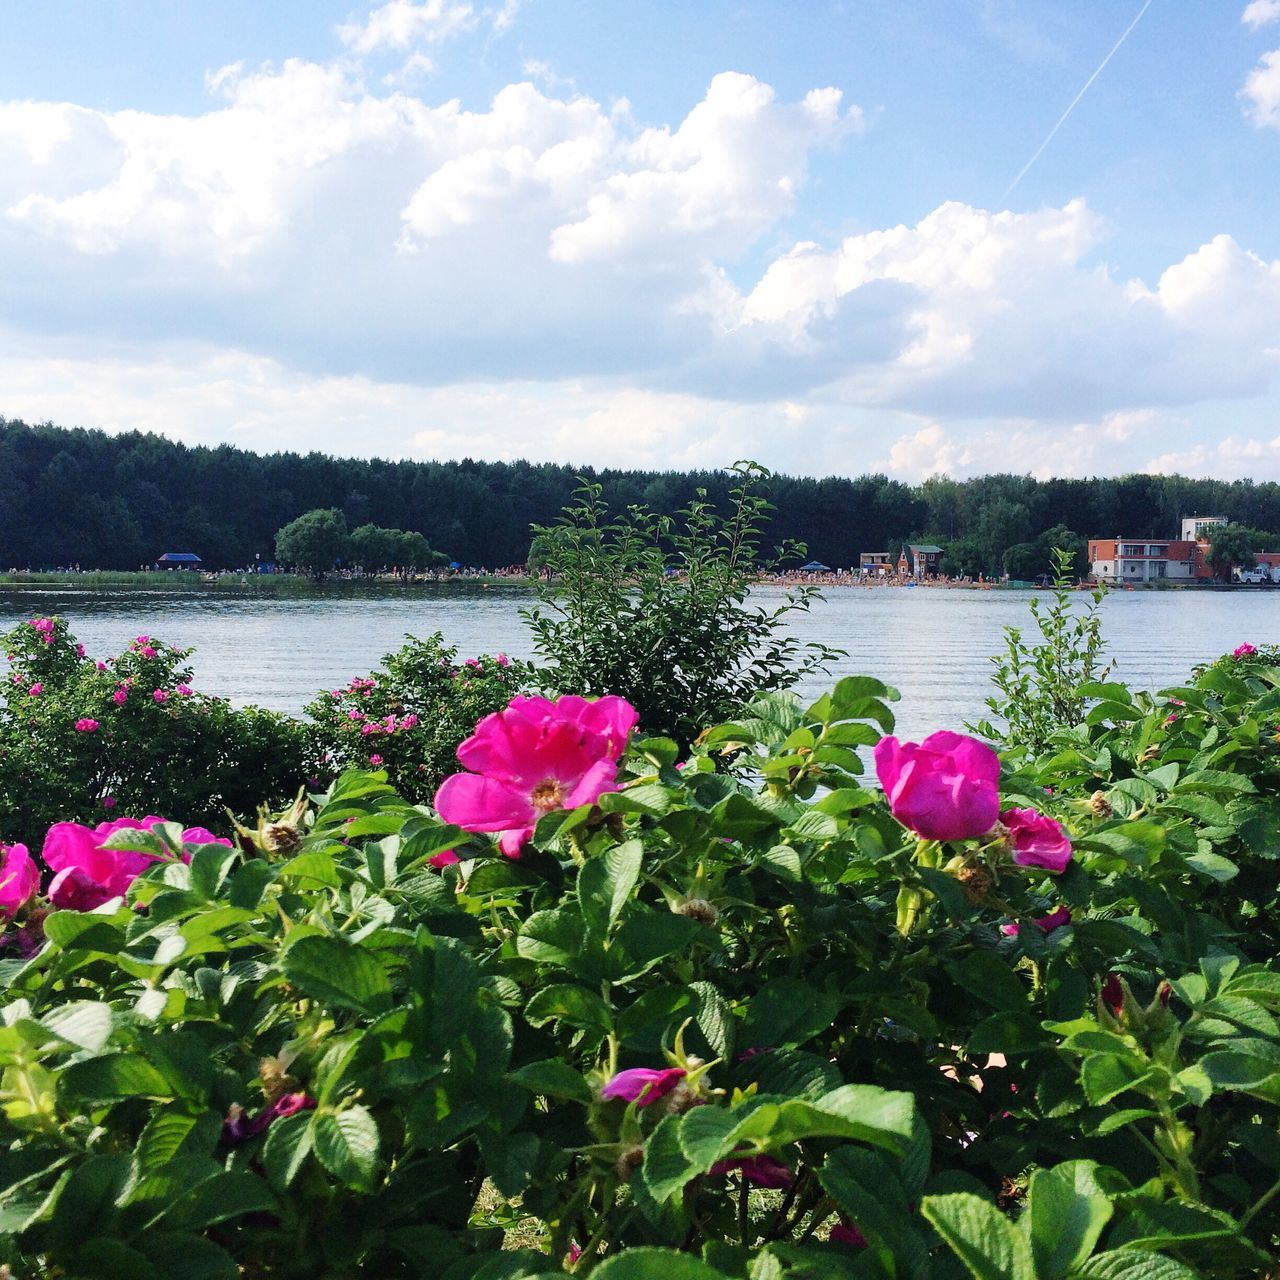 Flowers Roses Pink Roses Pound Lake Lake View Summer Russia Moscow Nature Summertime